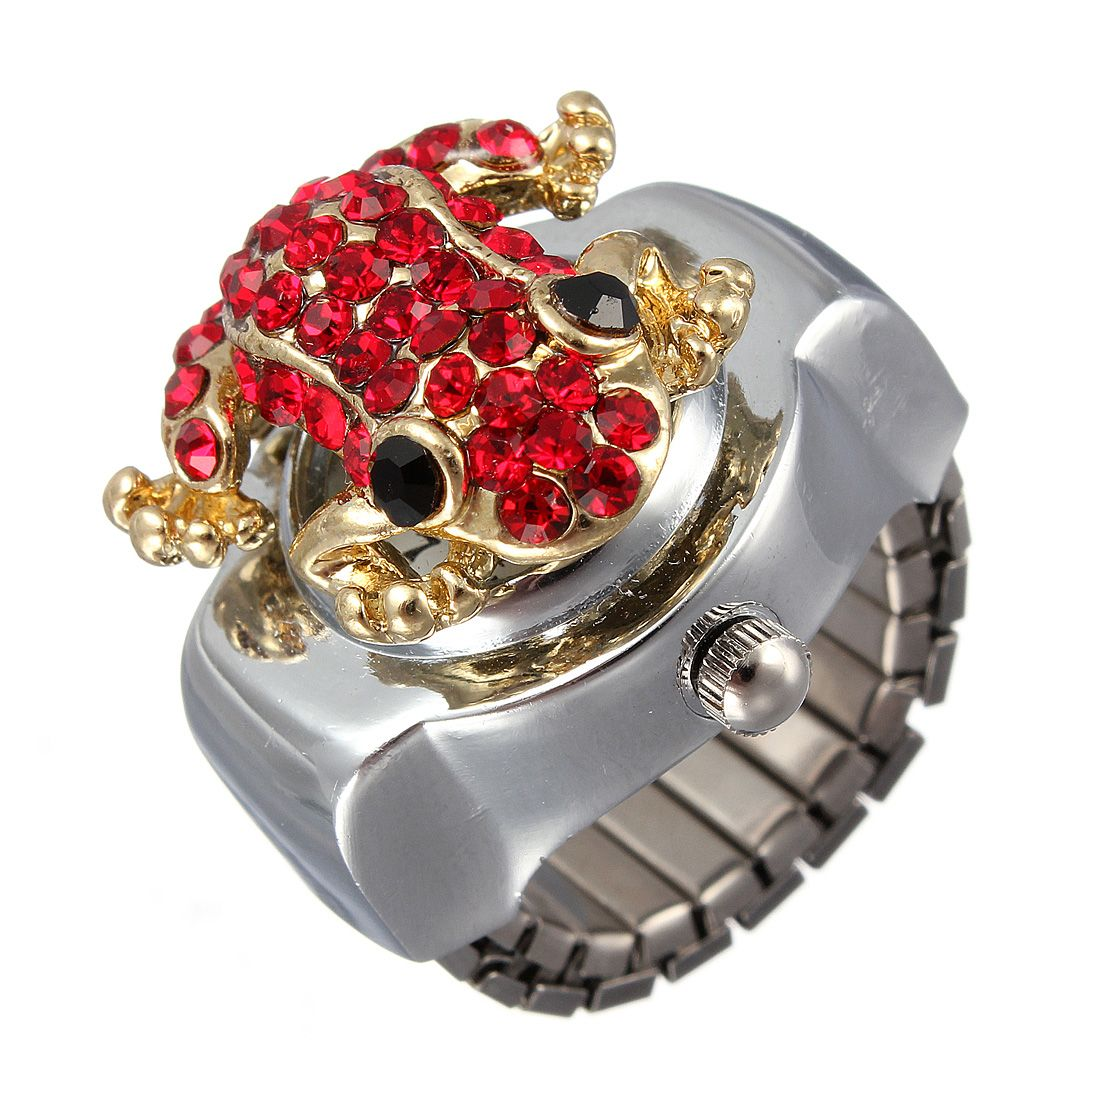 Steel Frog Rhinestone Crystal Ring Watch